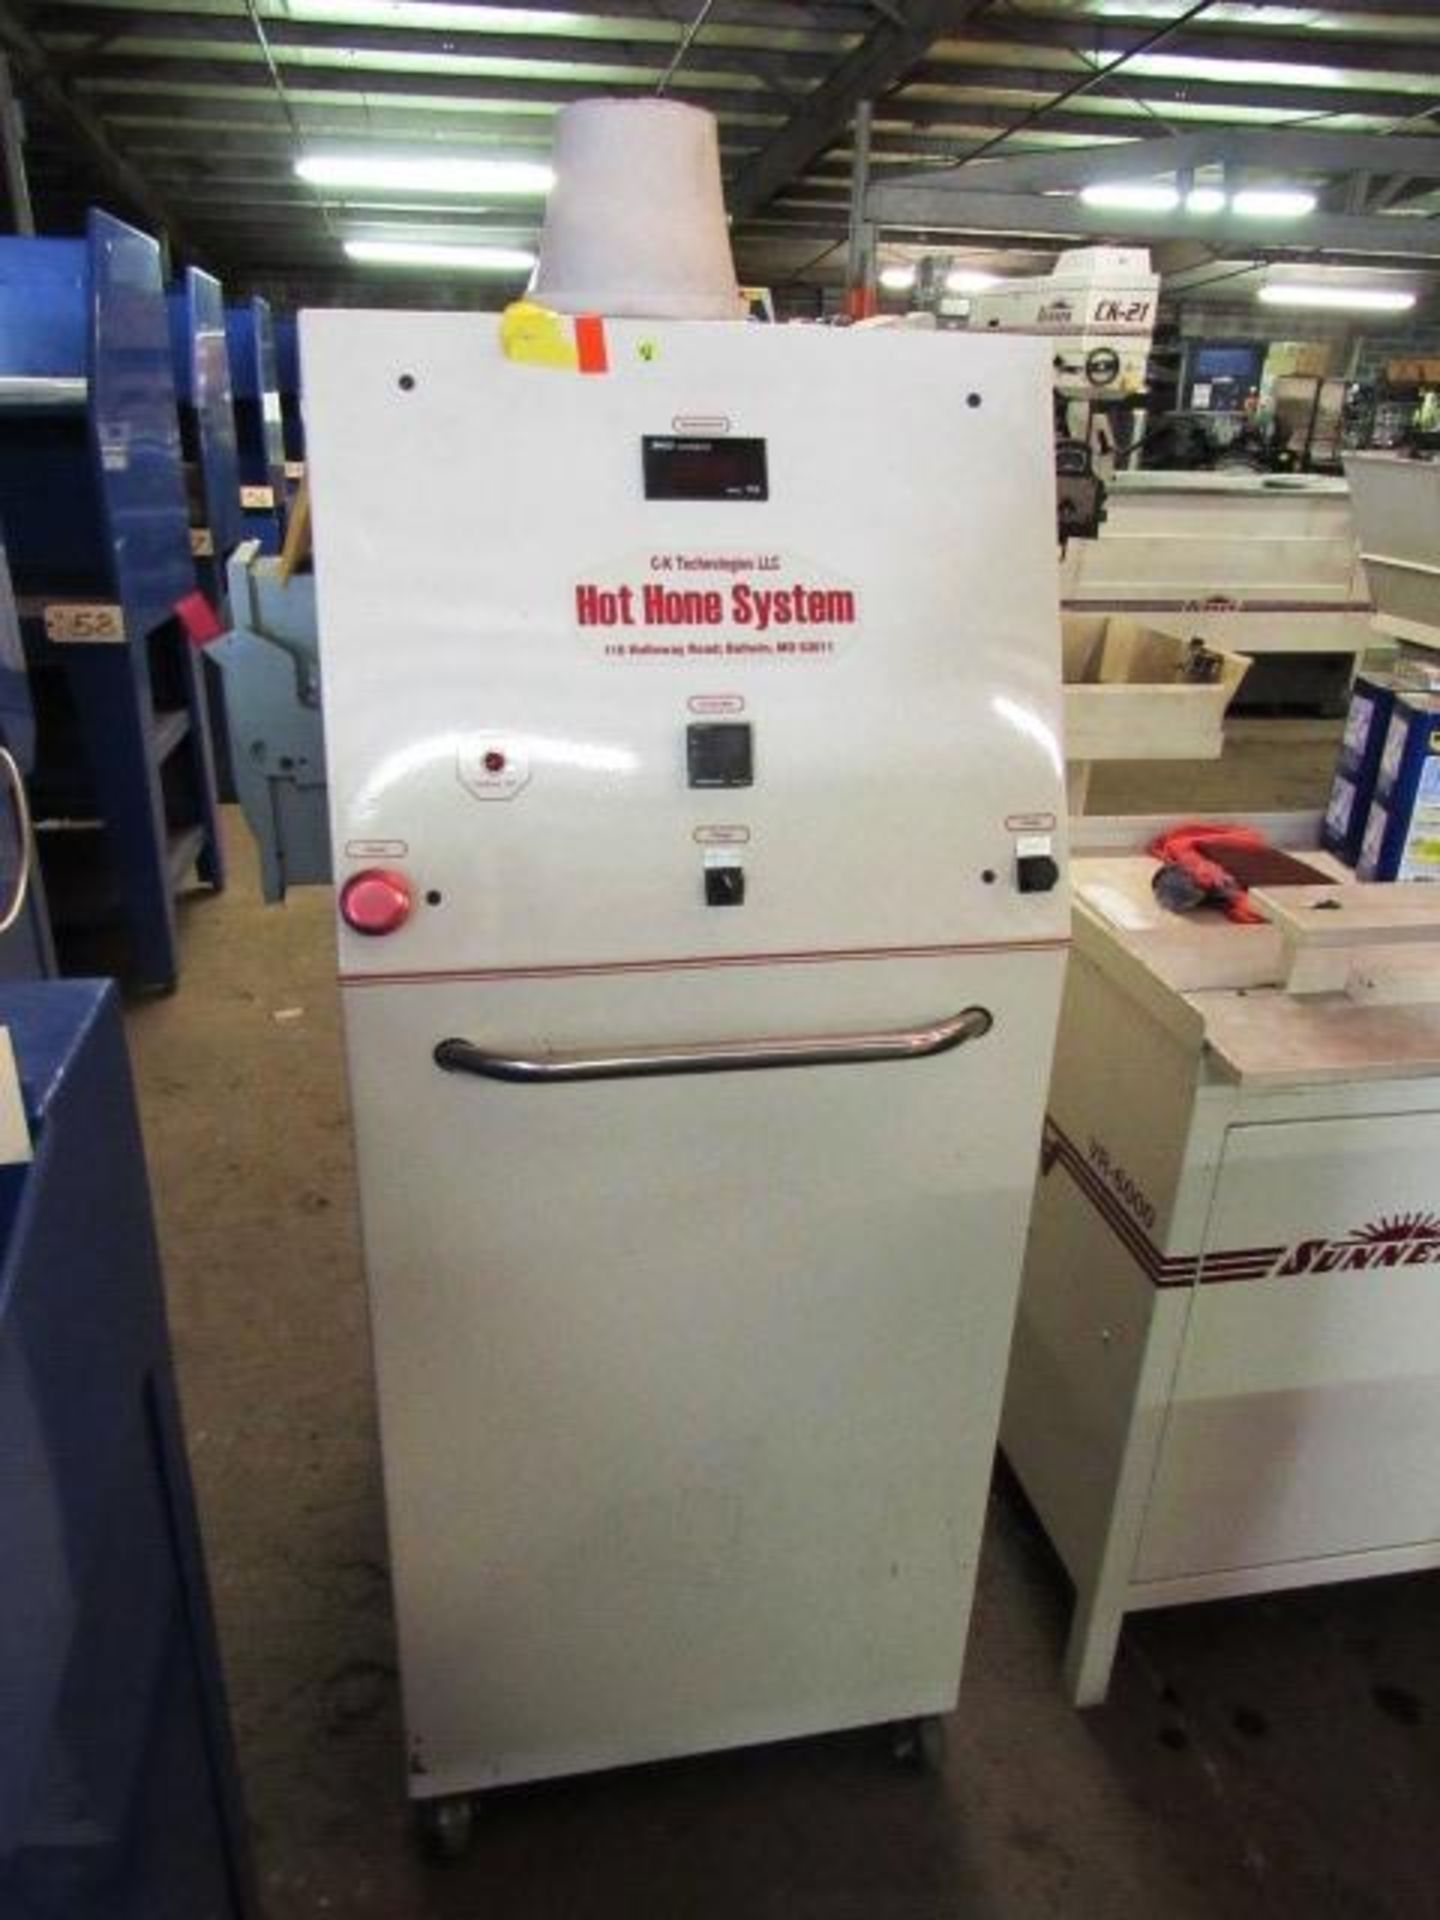 Lot 41 - C-K Engineering Portable Hot Hone System with Digital Readouts, sn:0030